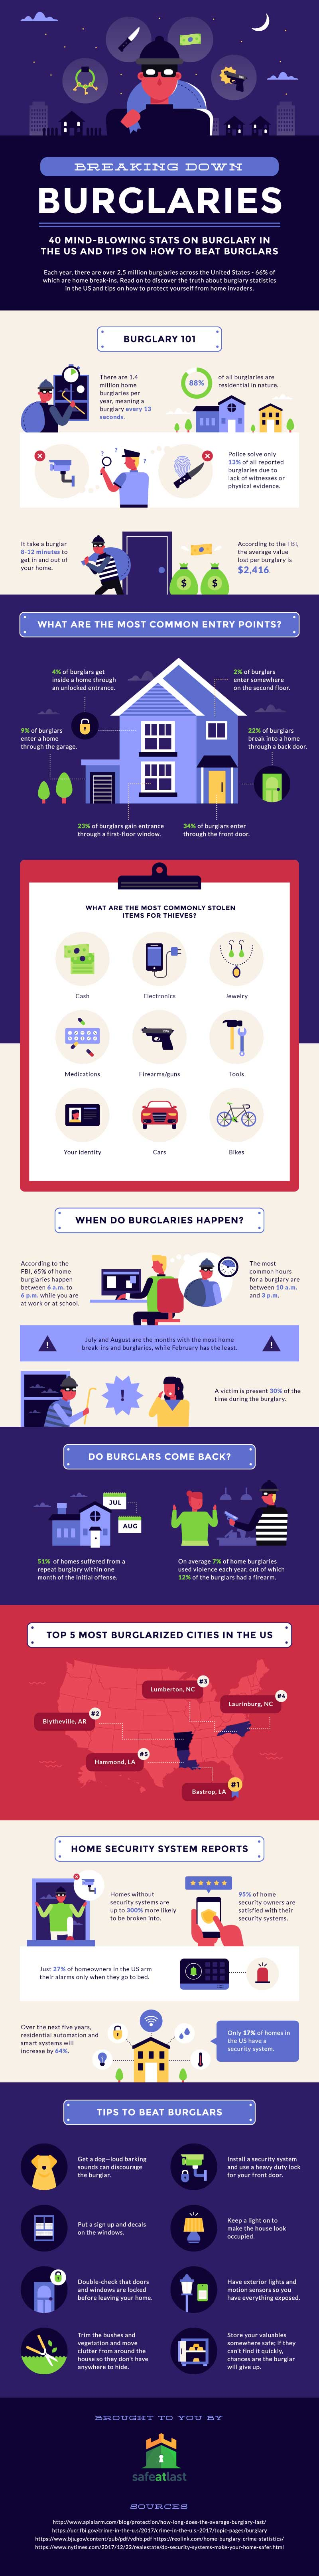 Infographic: How Secure Is Your Home Really?